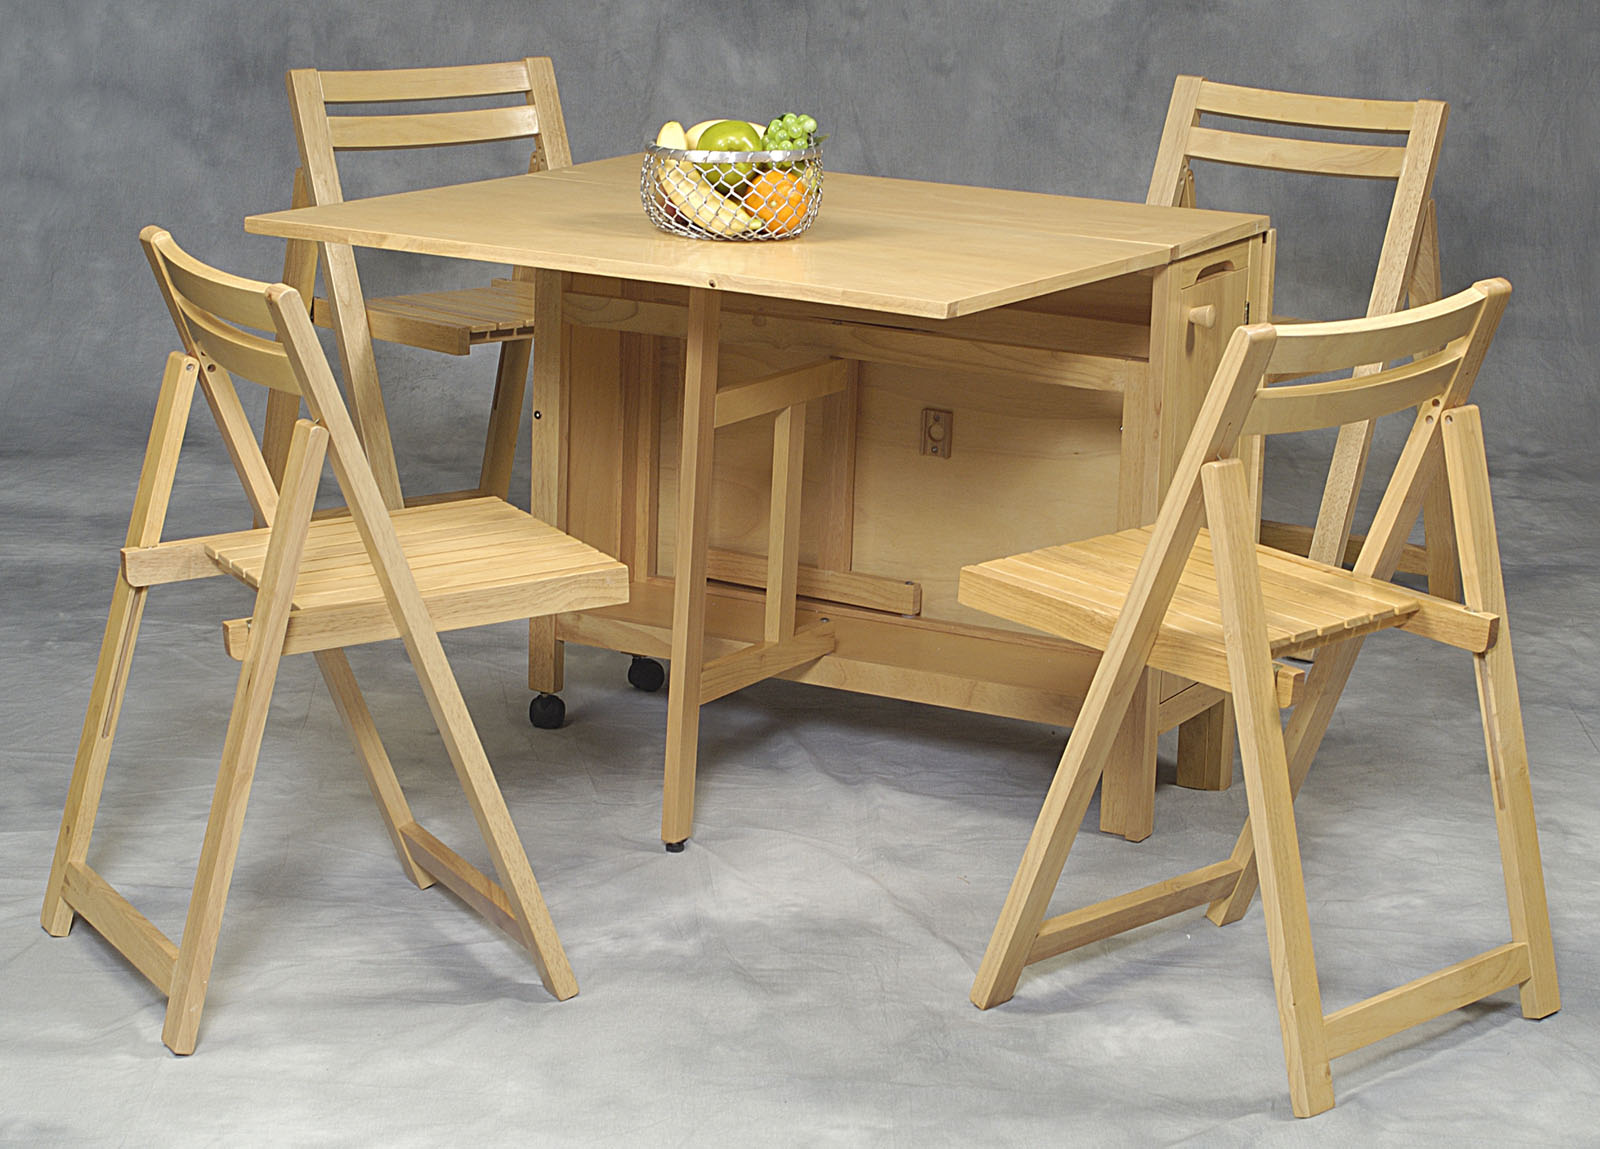 Space Saver 5 Piece Table And Chair Set: Space Saver 5 Piece .,Space Saver Dining Set   Blog Interiors Black